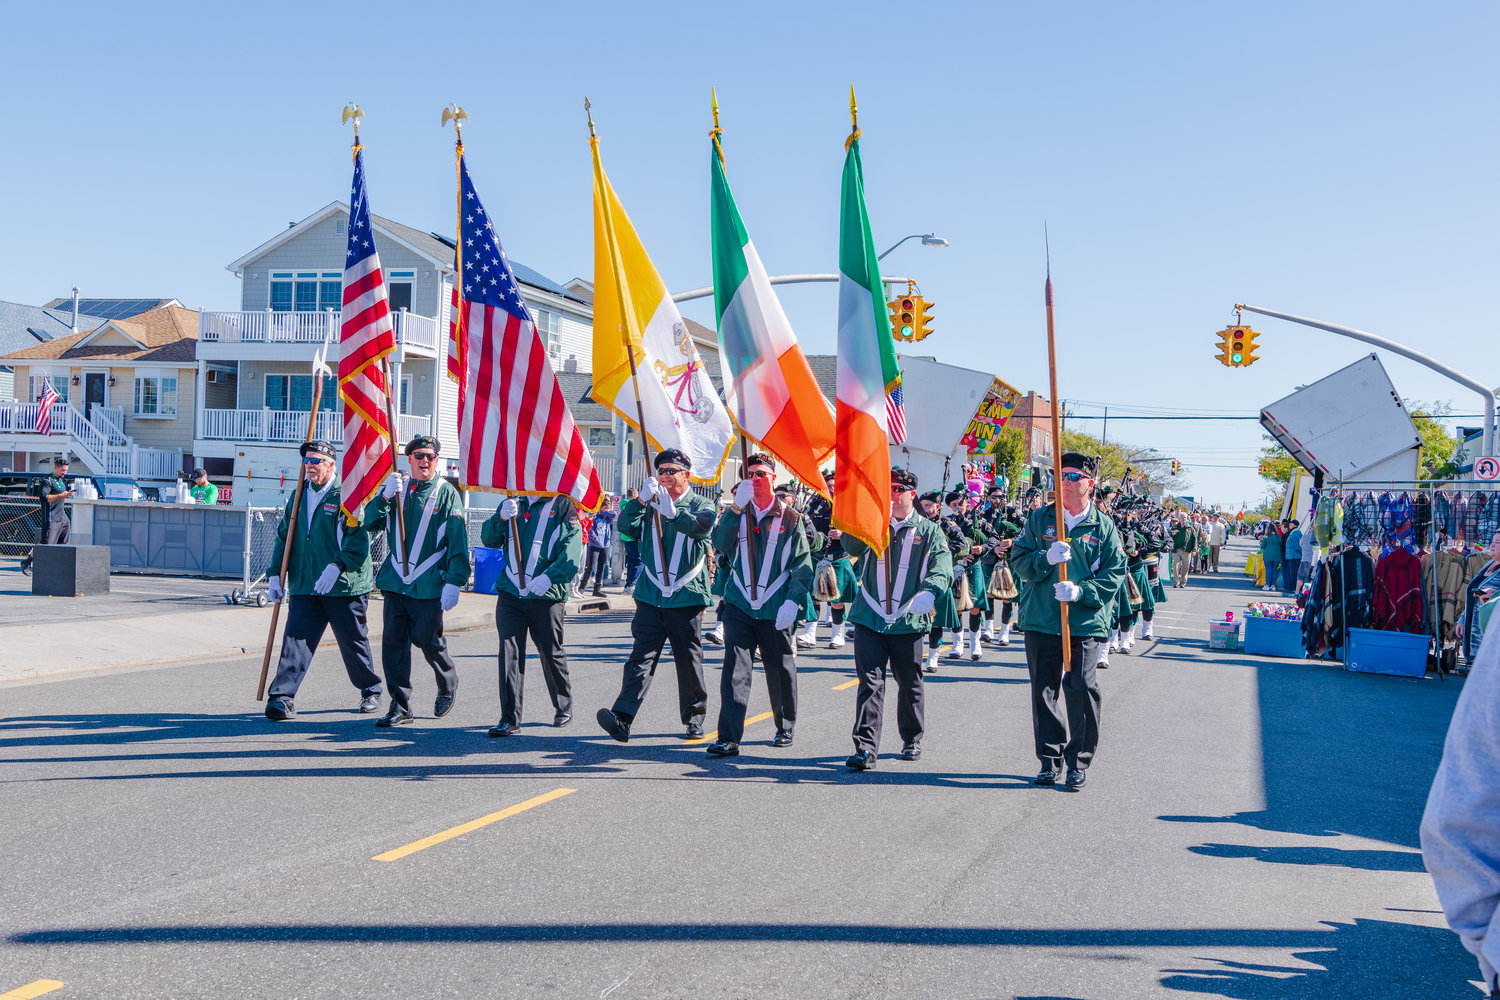 The AOH Division 17 Honor Guard marched in the 2019 parade on Oct. 5.